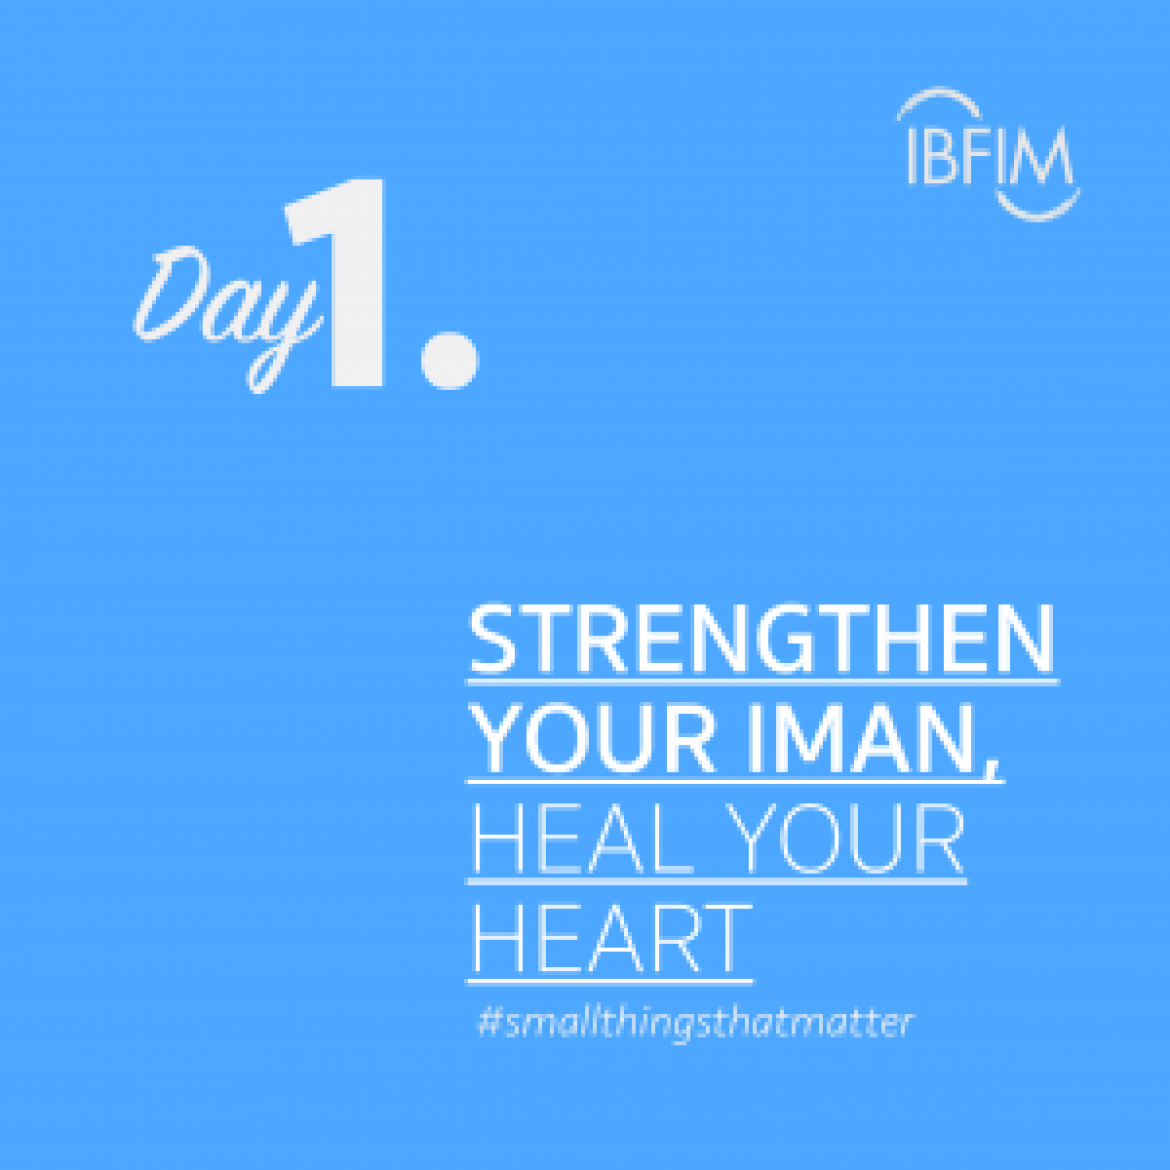 Ramadan Daily #smallthingsthatmatter